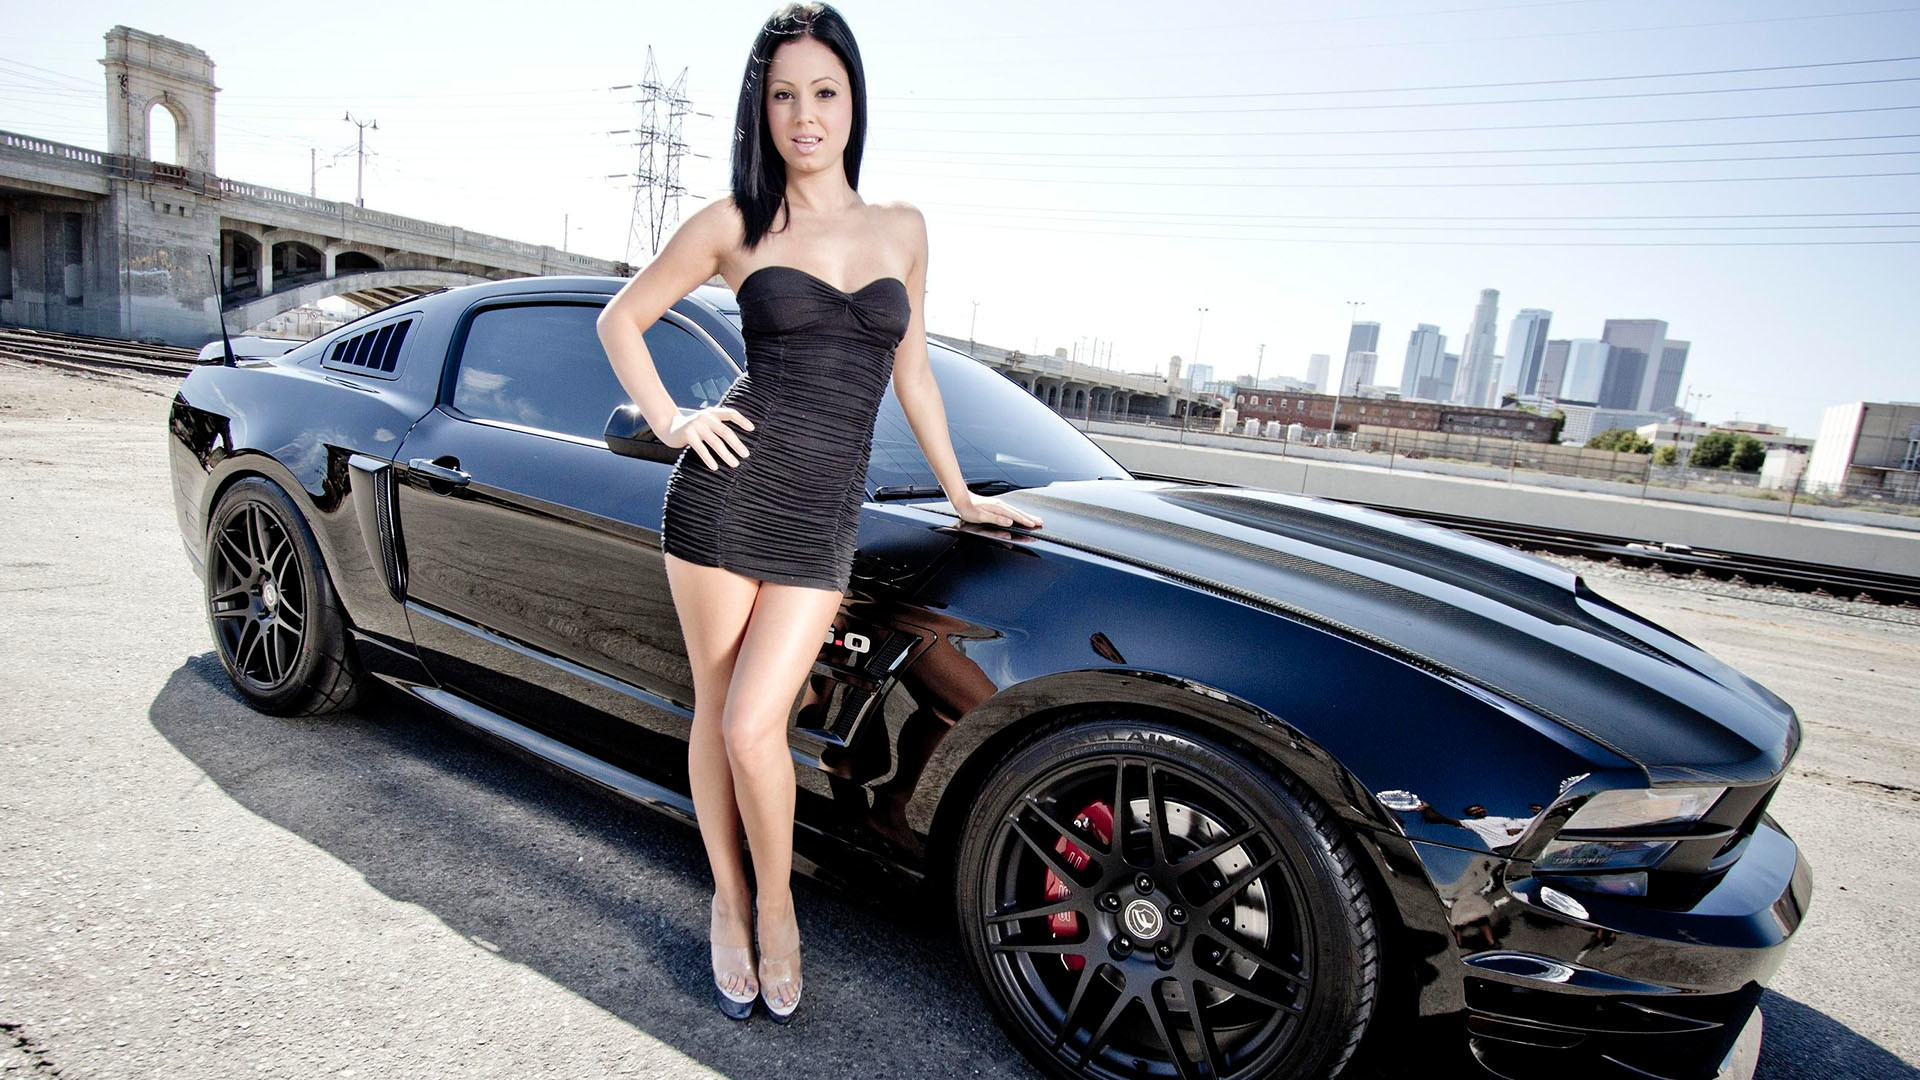 1920x1080 Mustangs Girls Stang - Bing images | 2005 to 2014 Mustangs (5th Gen) |  Pinterest | Mustang girl and 2014 mustang